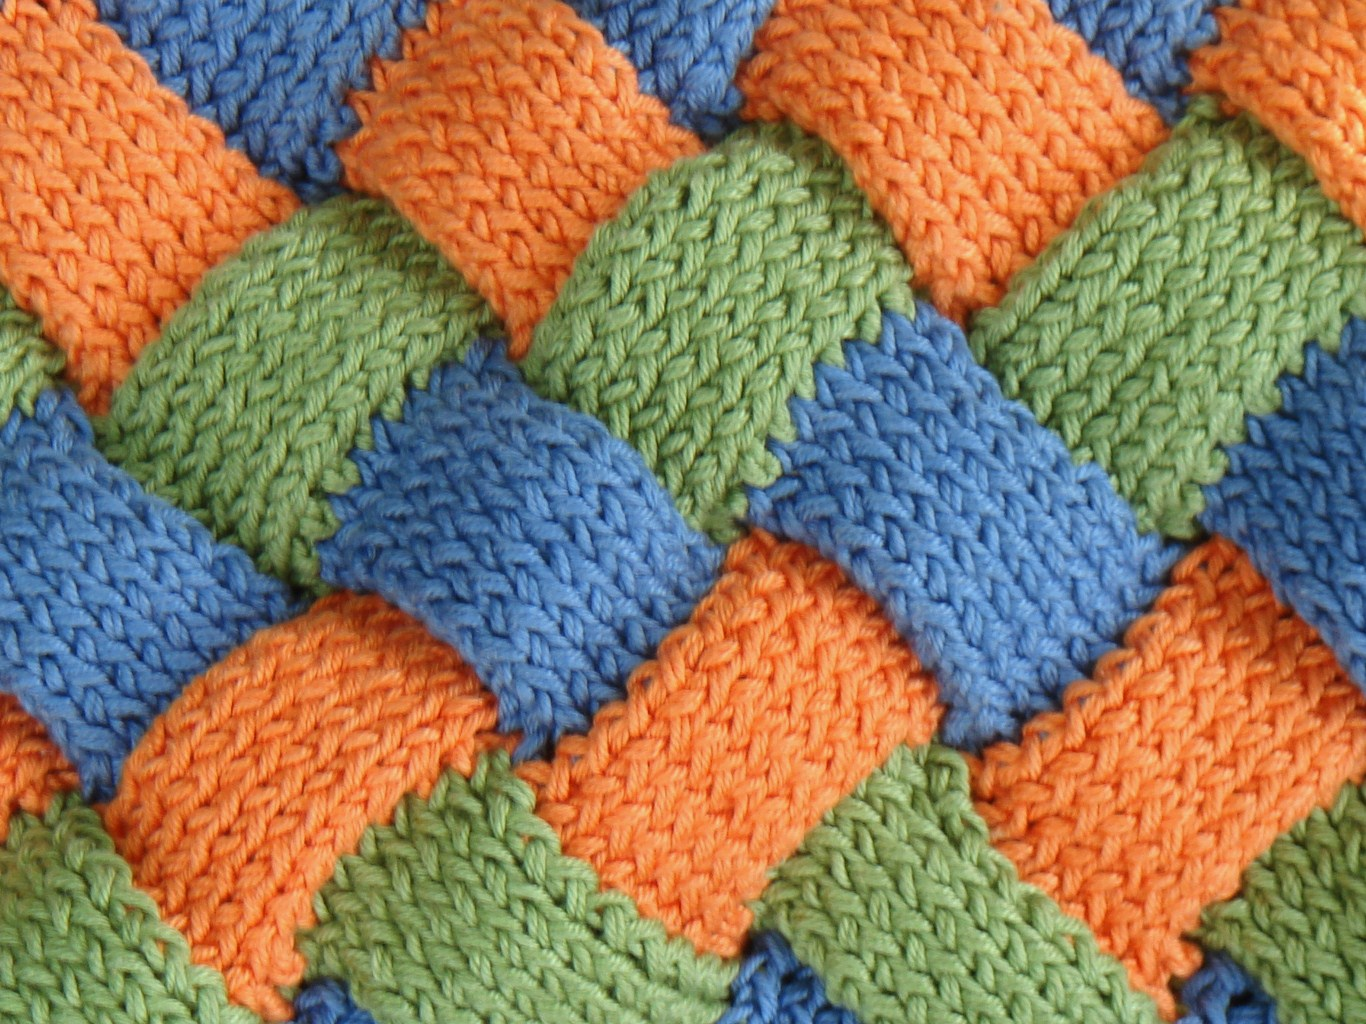 Complicated Knitting Stitches : gunksdesigns: Entrelac Stitch Blanket